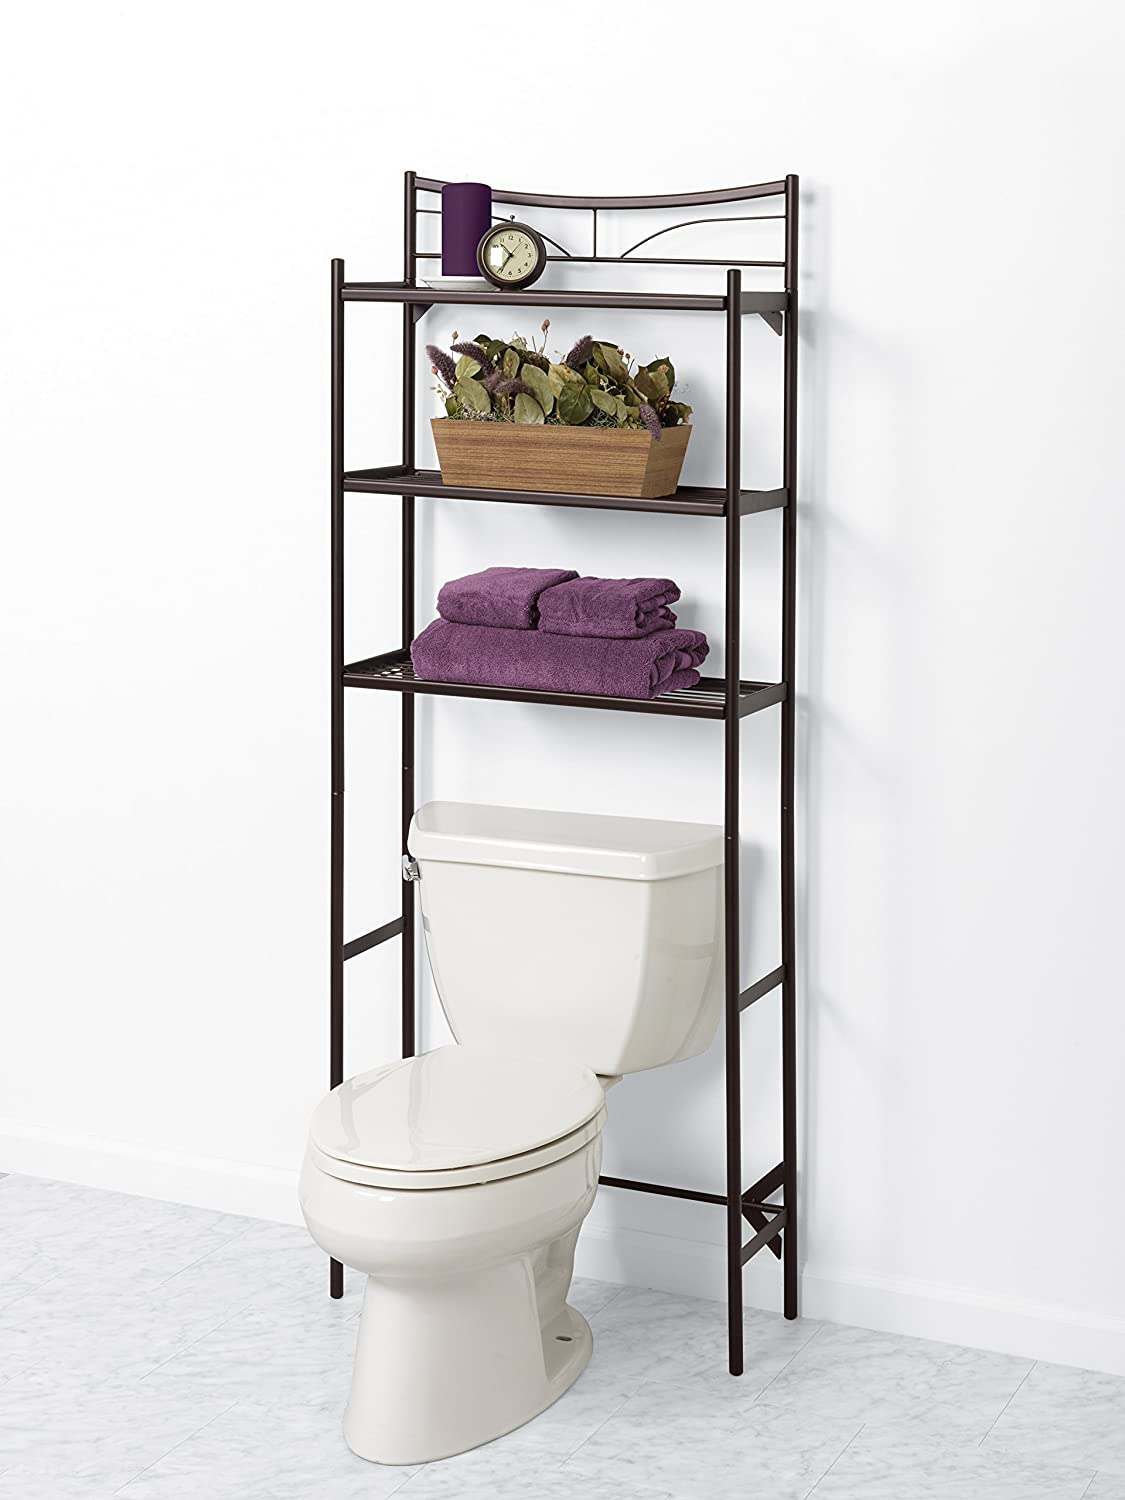 Bathroom Spacesaver Over Toilet Shelves Storage Metal